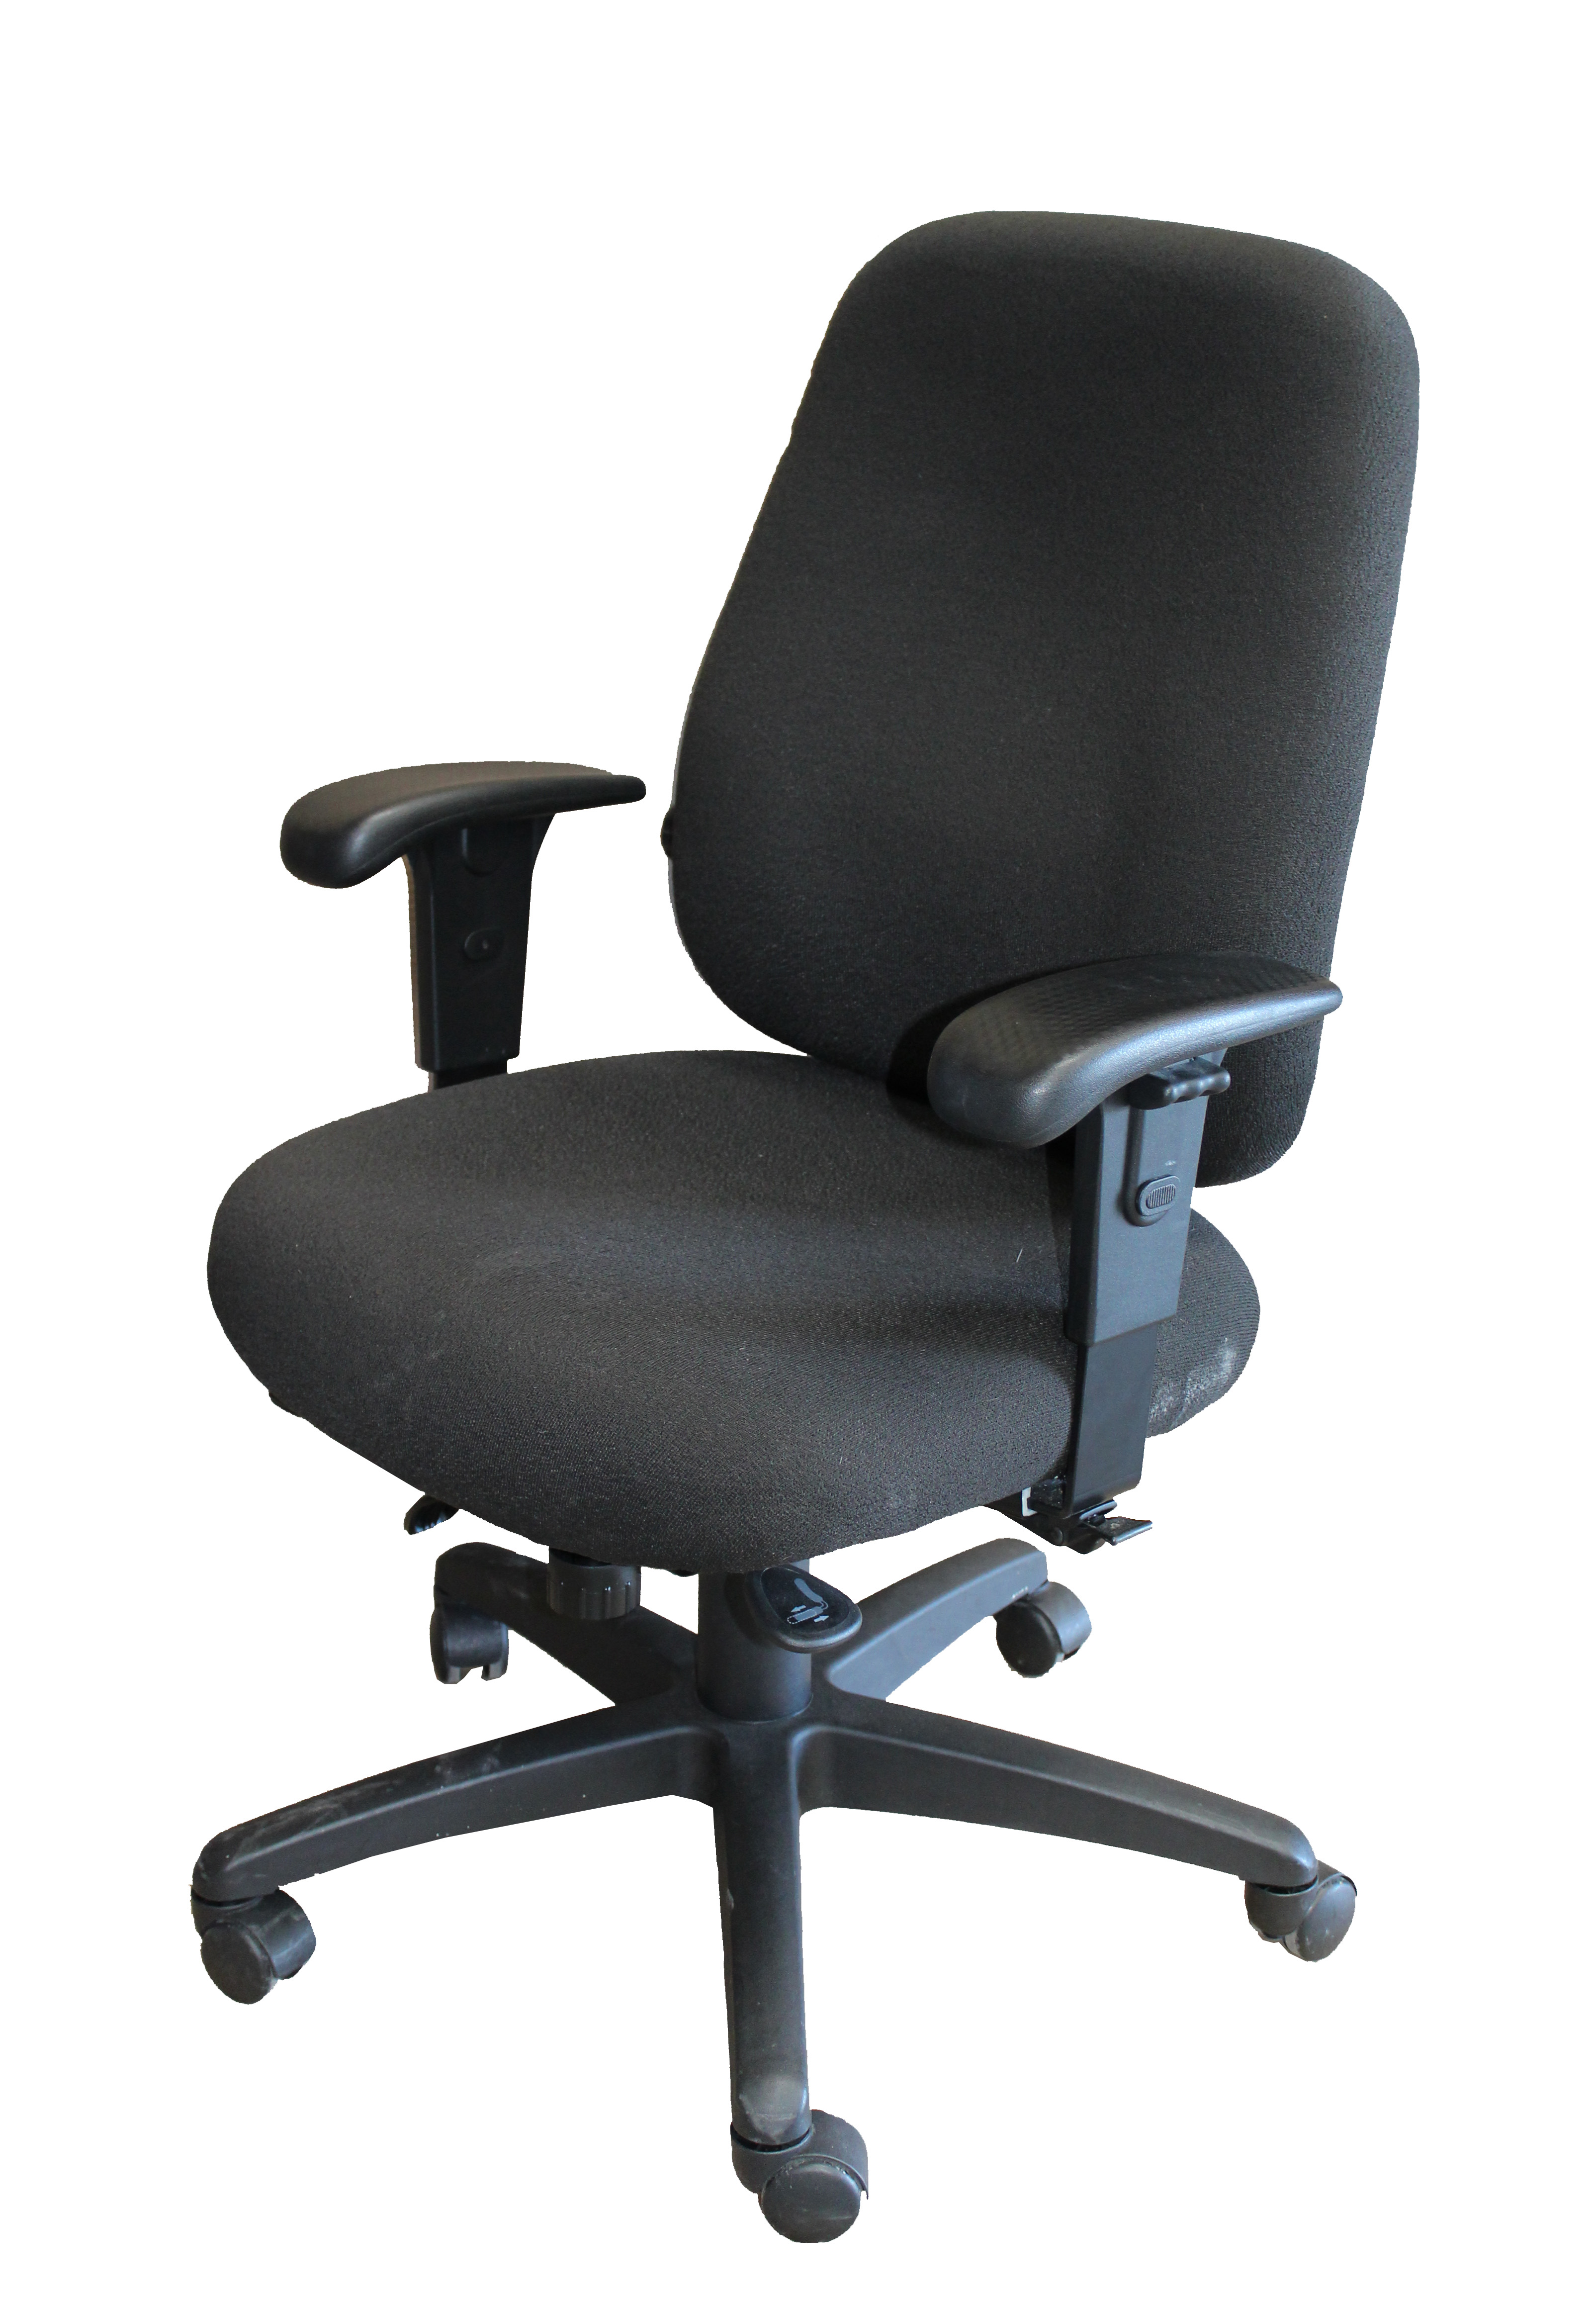 94d2b52dda3 Black Fabric Square Back Fabric Seat Task Chair By Office Master